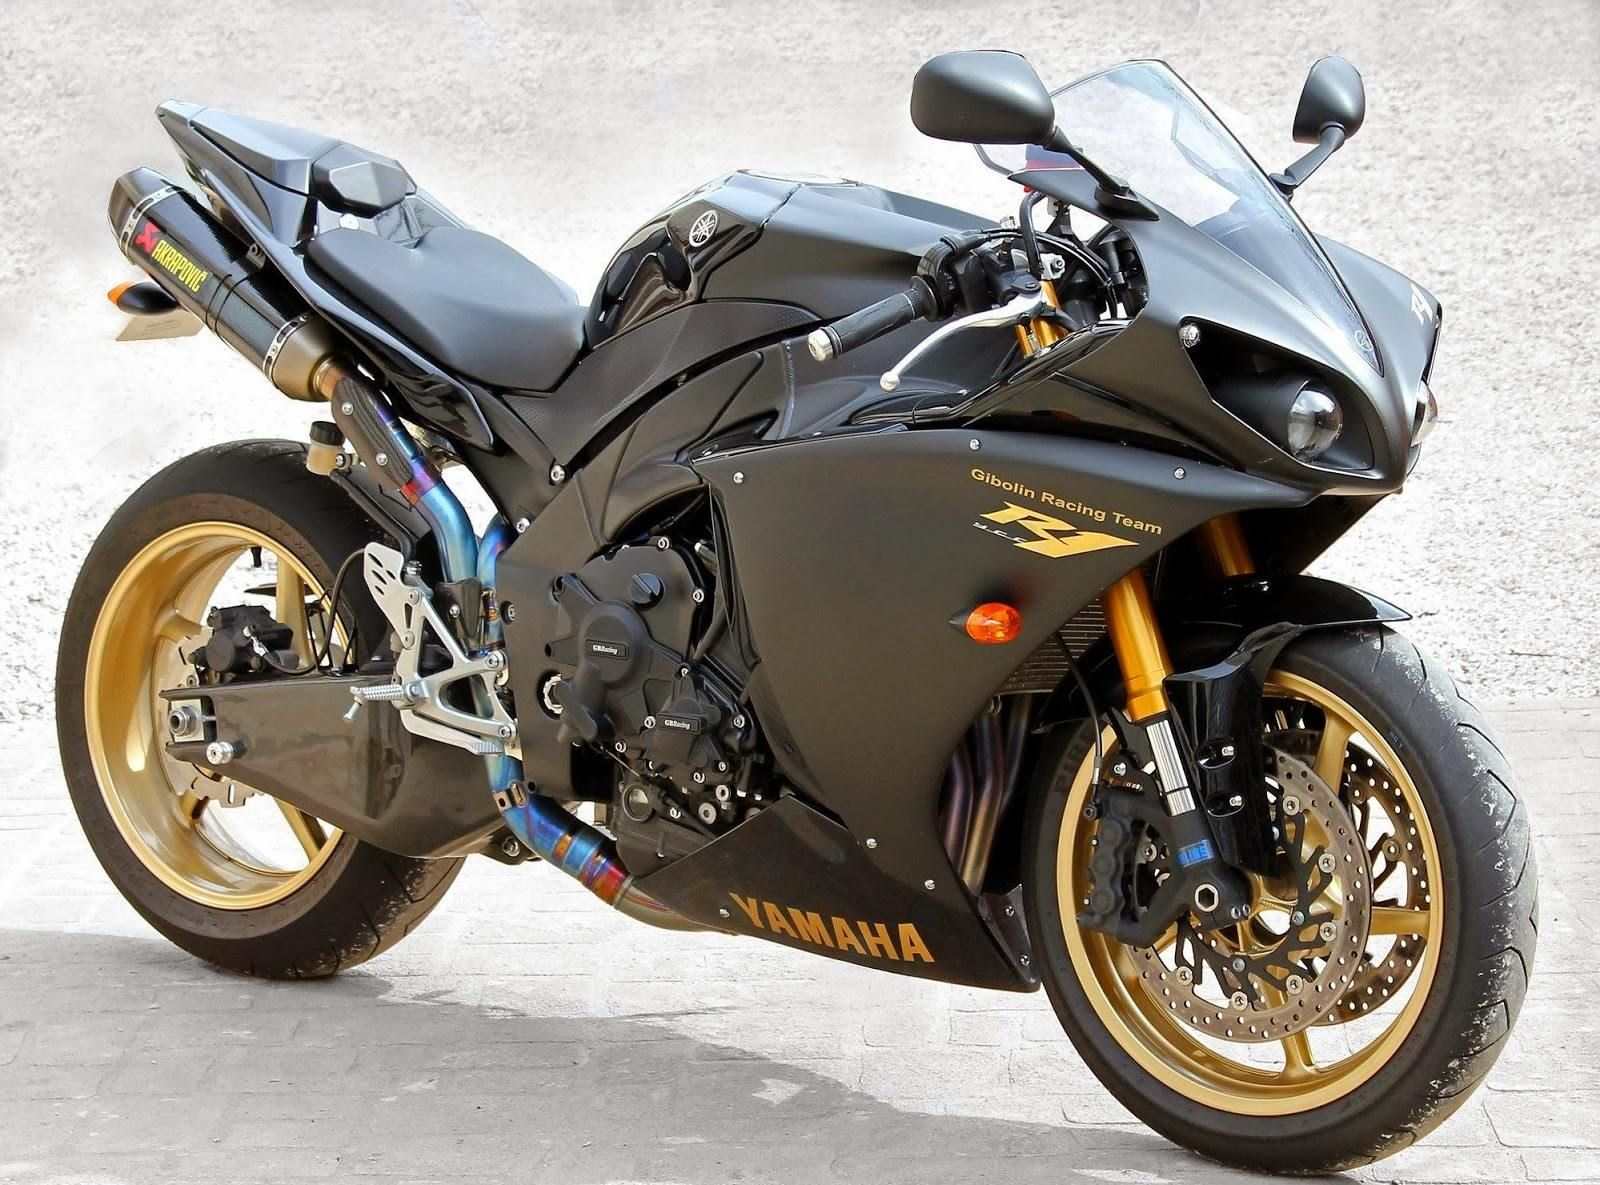 2010 yamaha r1 black edition akrapovic exhaust r1 my dream pinterest yamaha r1 and exhausted. Black Bedroom Furniture Sets. Home Design Ideas